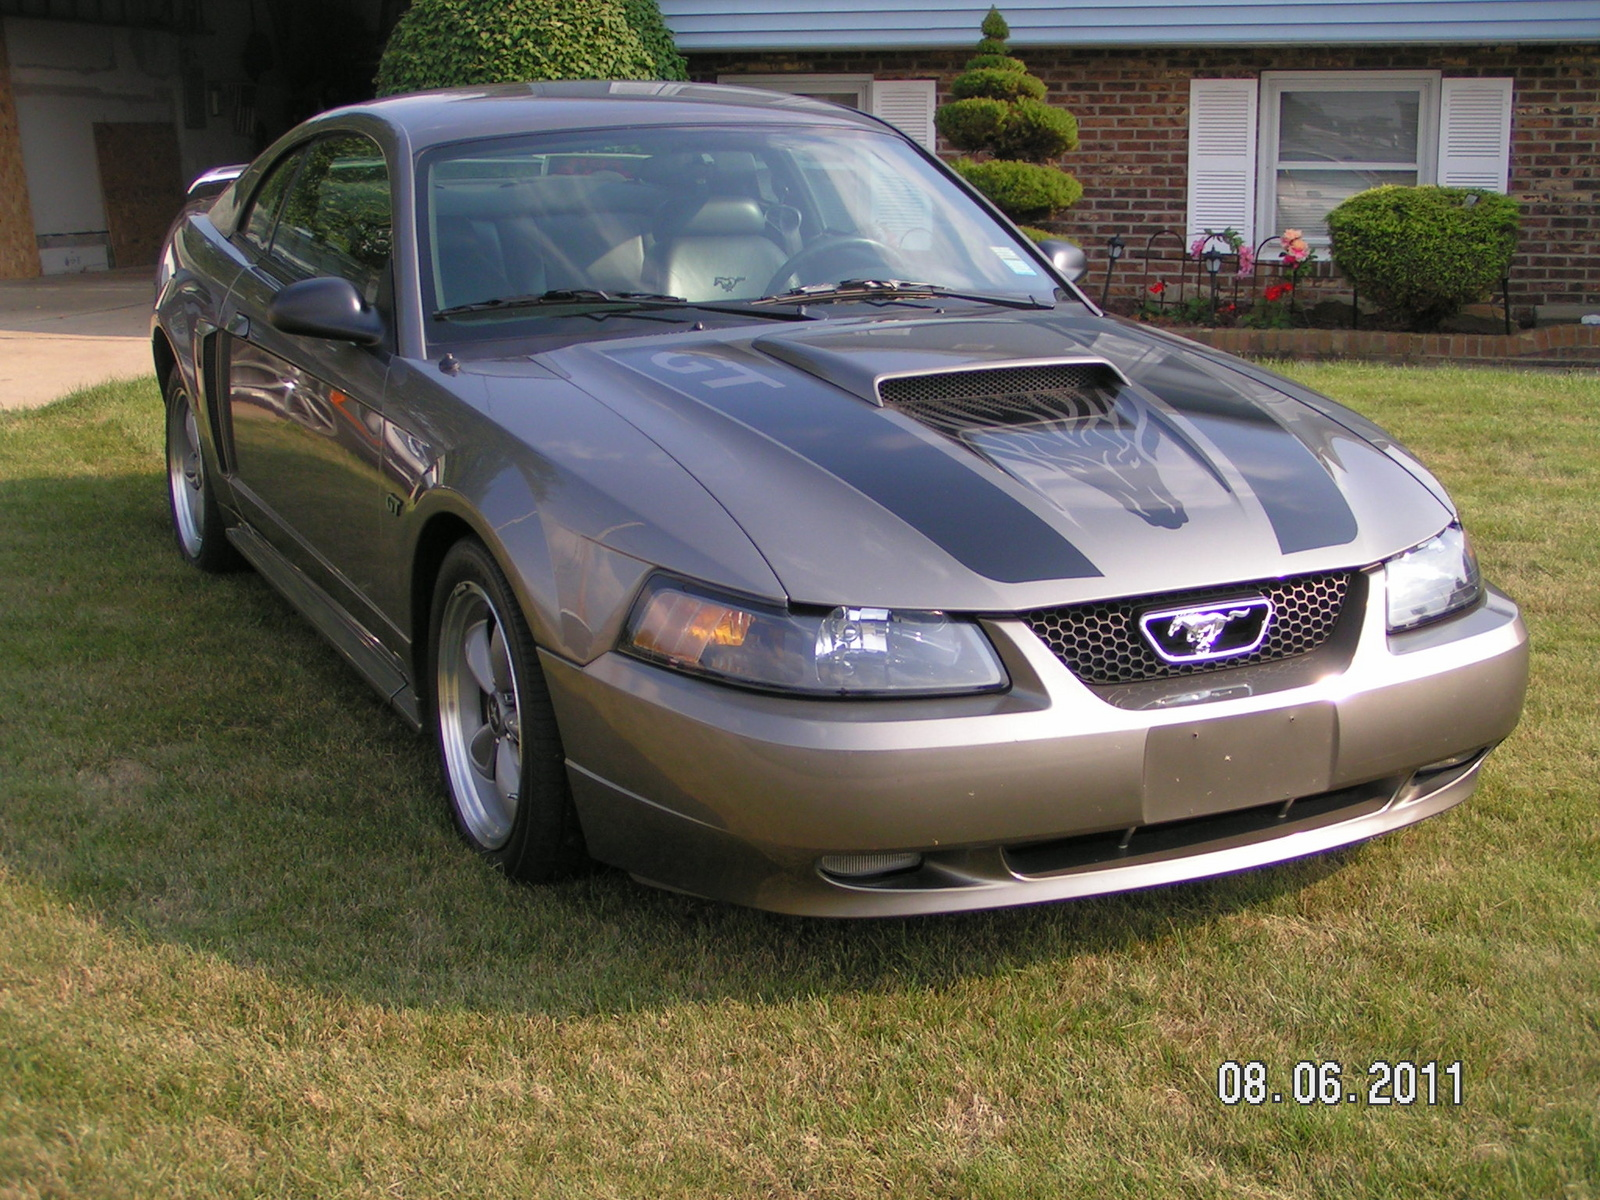 2002 Ford Mustang photo - 1